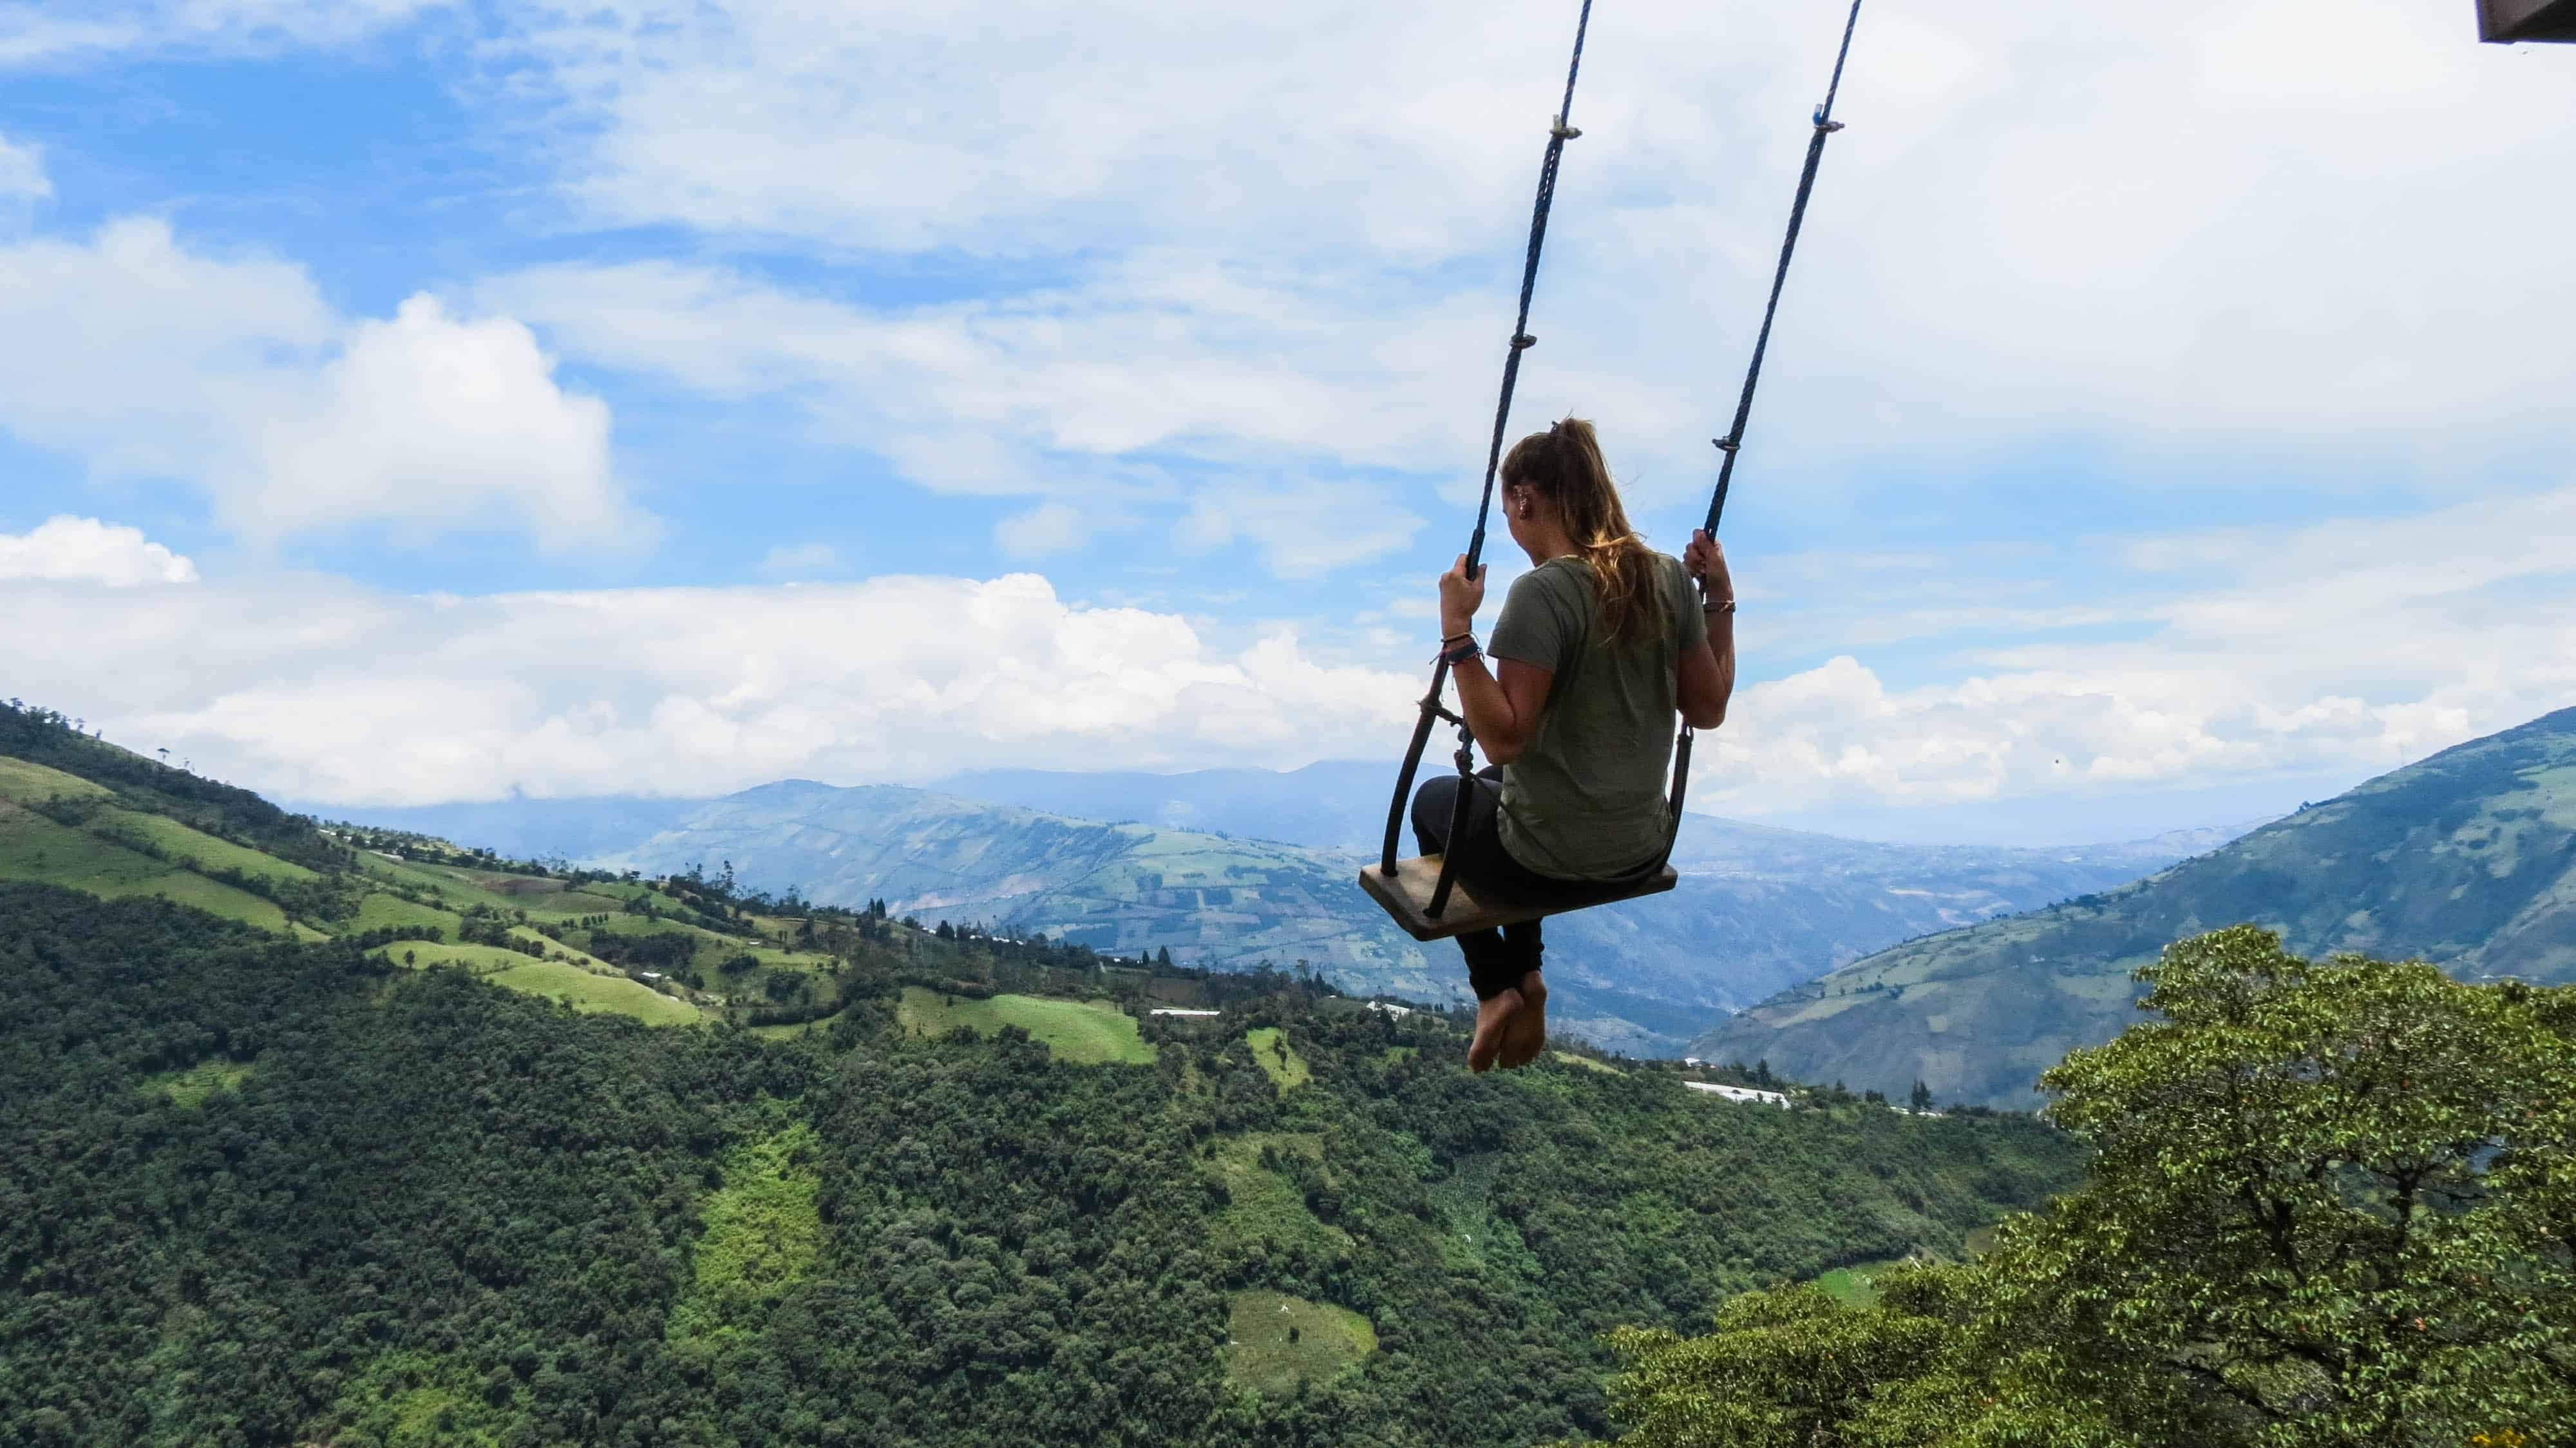 Ba os ecuador a guide for adventurers walkaboot travel for Casa del arbol cuenca